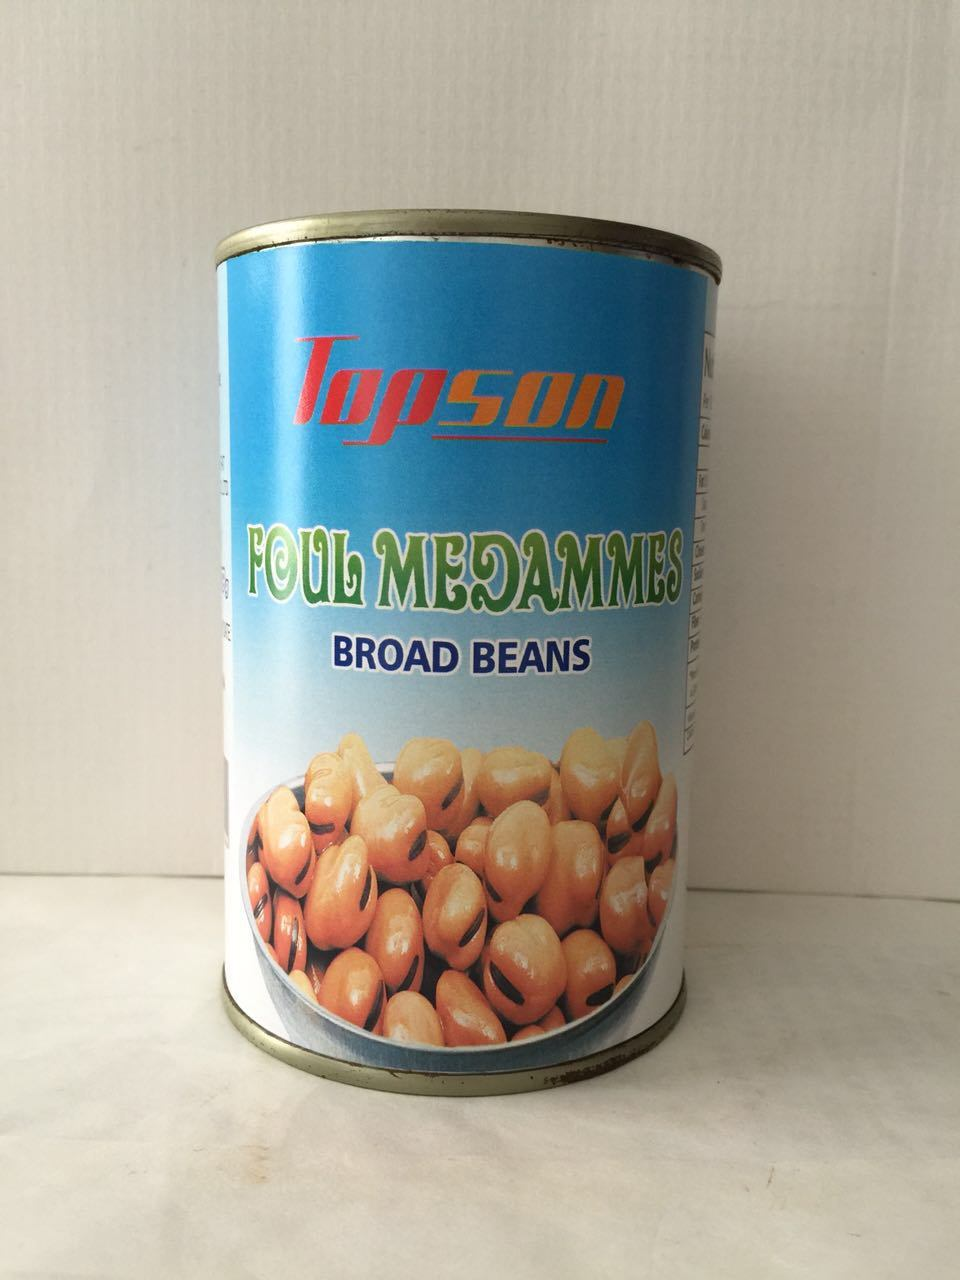 Canned Broad Beans, Foul Medammes Broad Beans in Brine